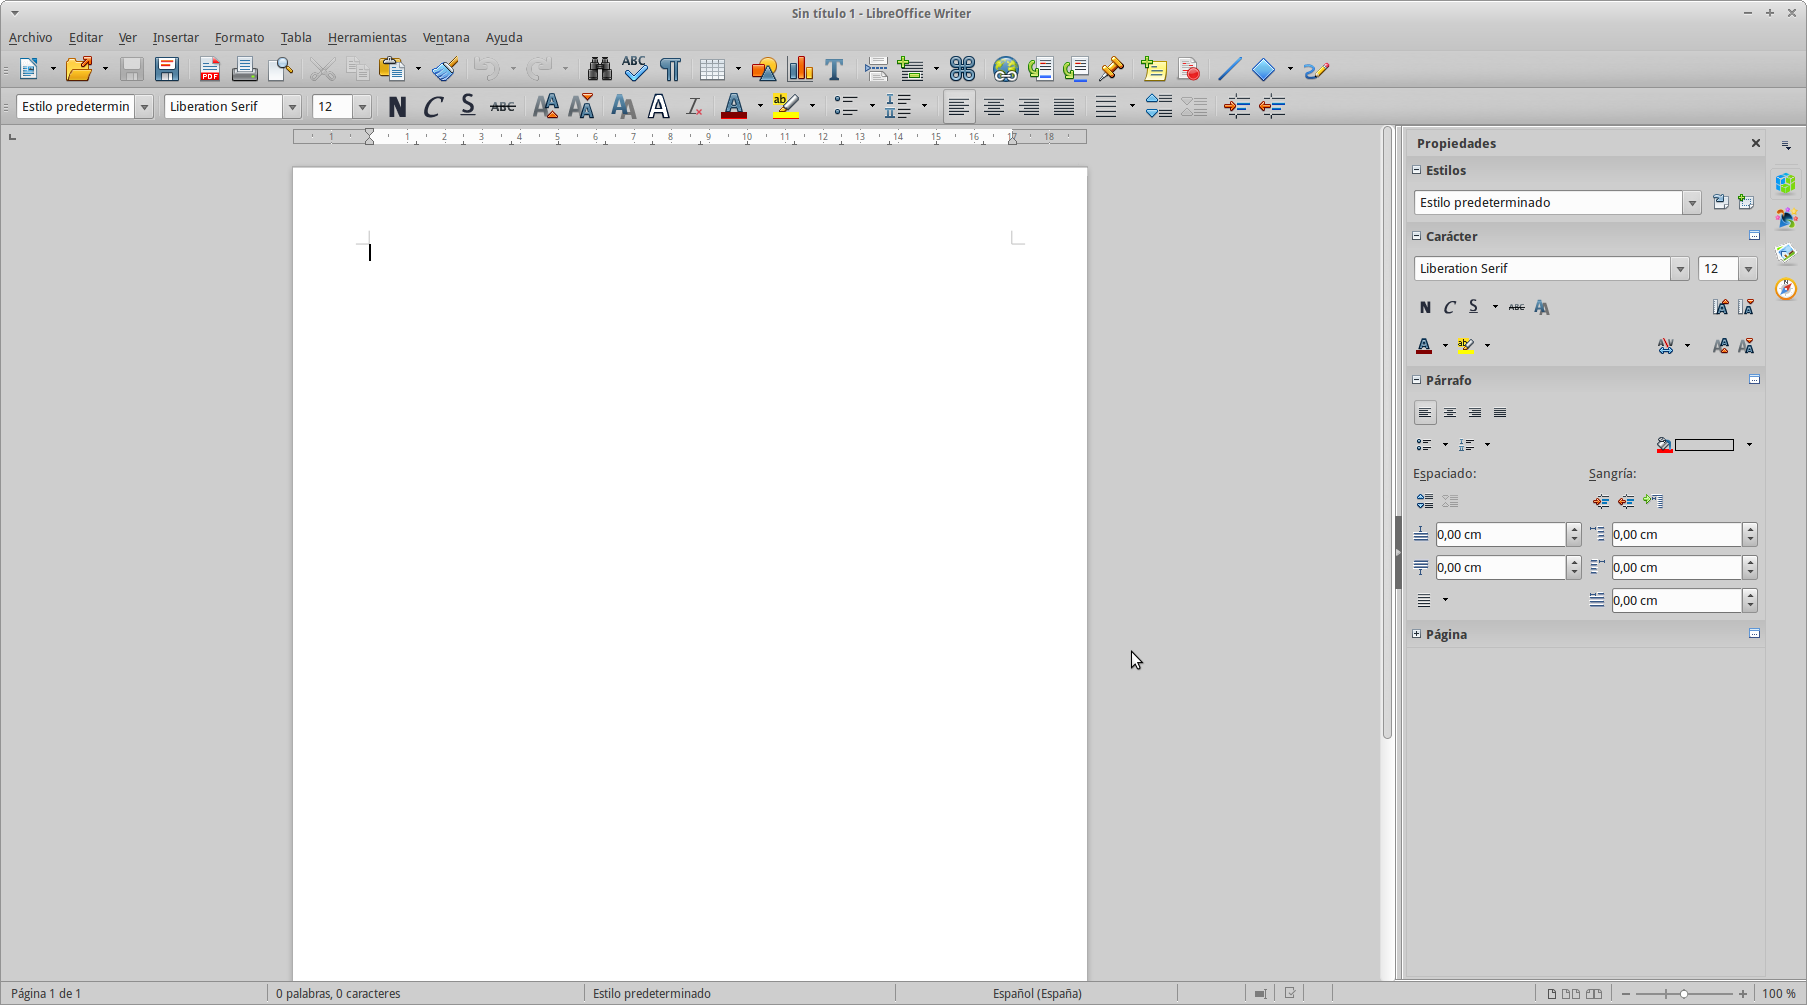 Libreoffice